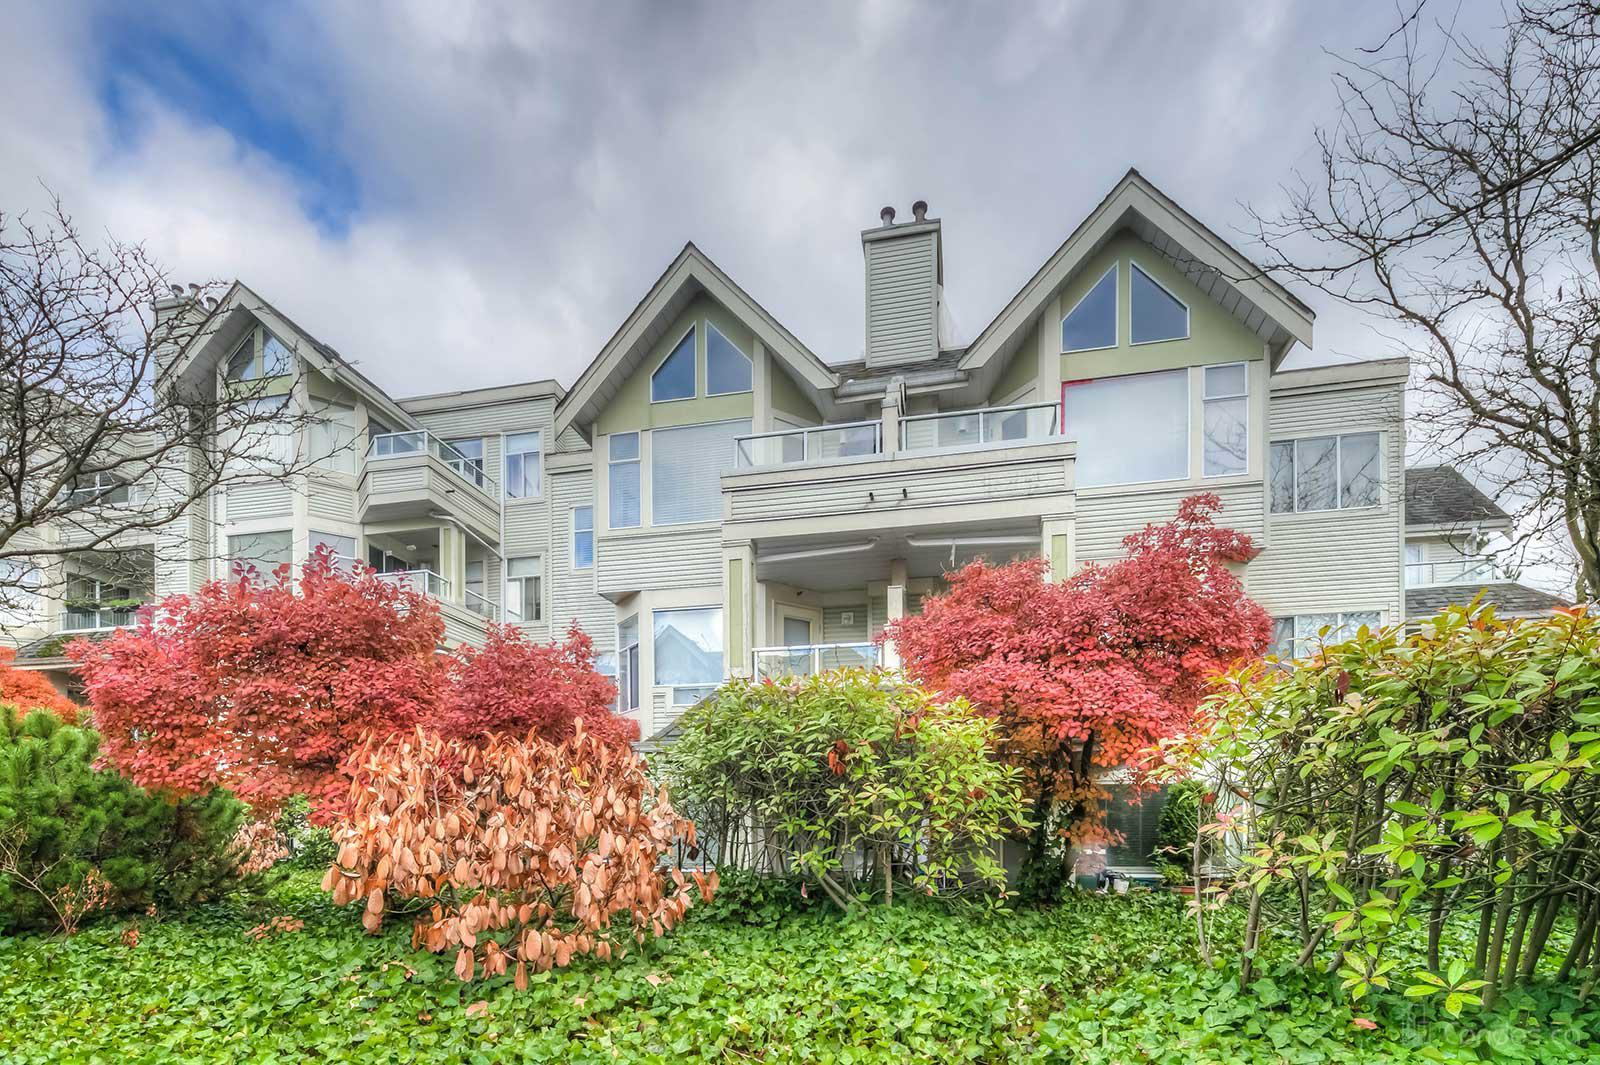 Raintree Gardens at 3628 Rae Ave, Vancouver 1